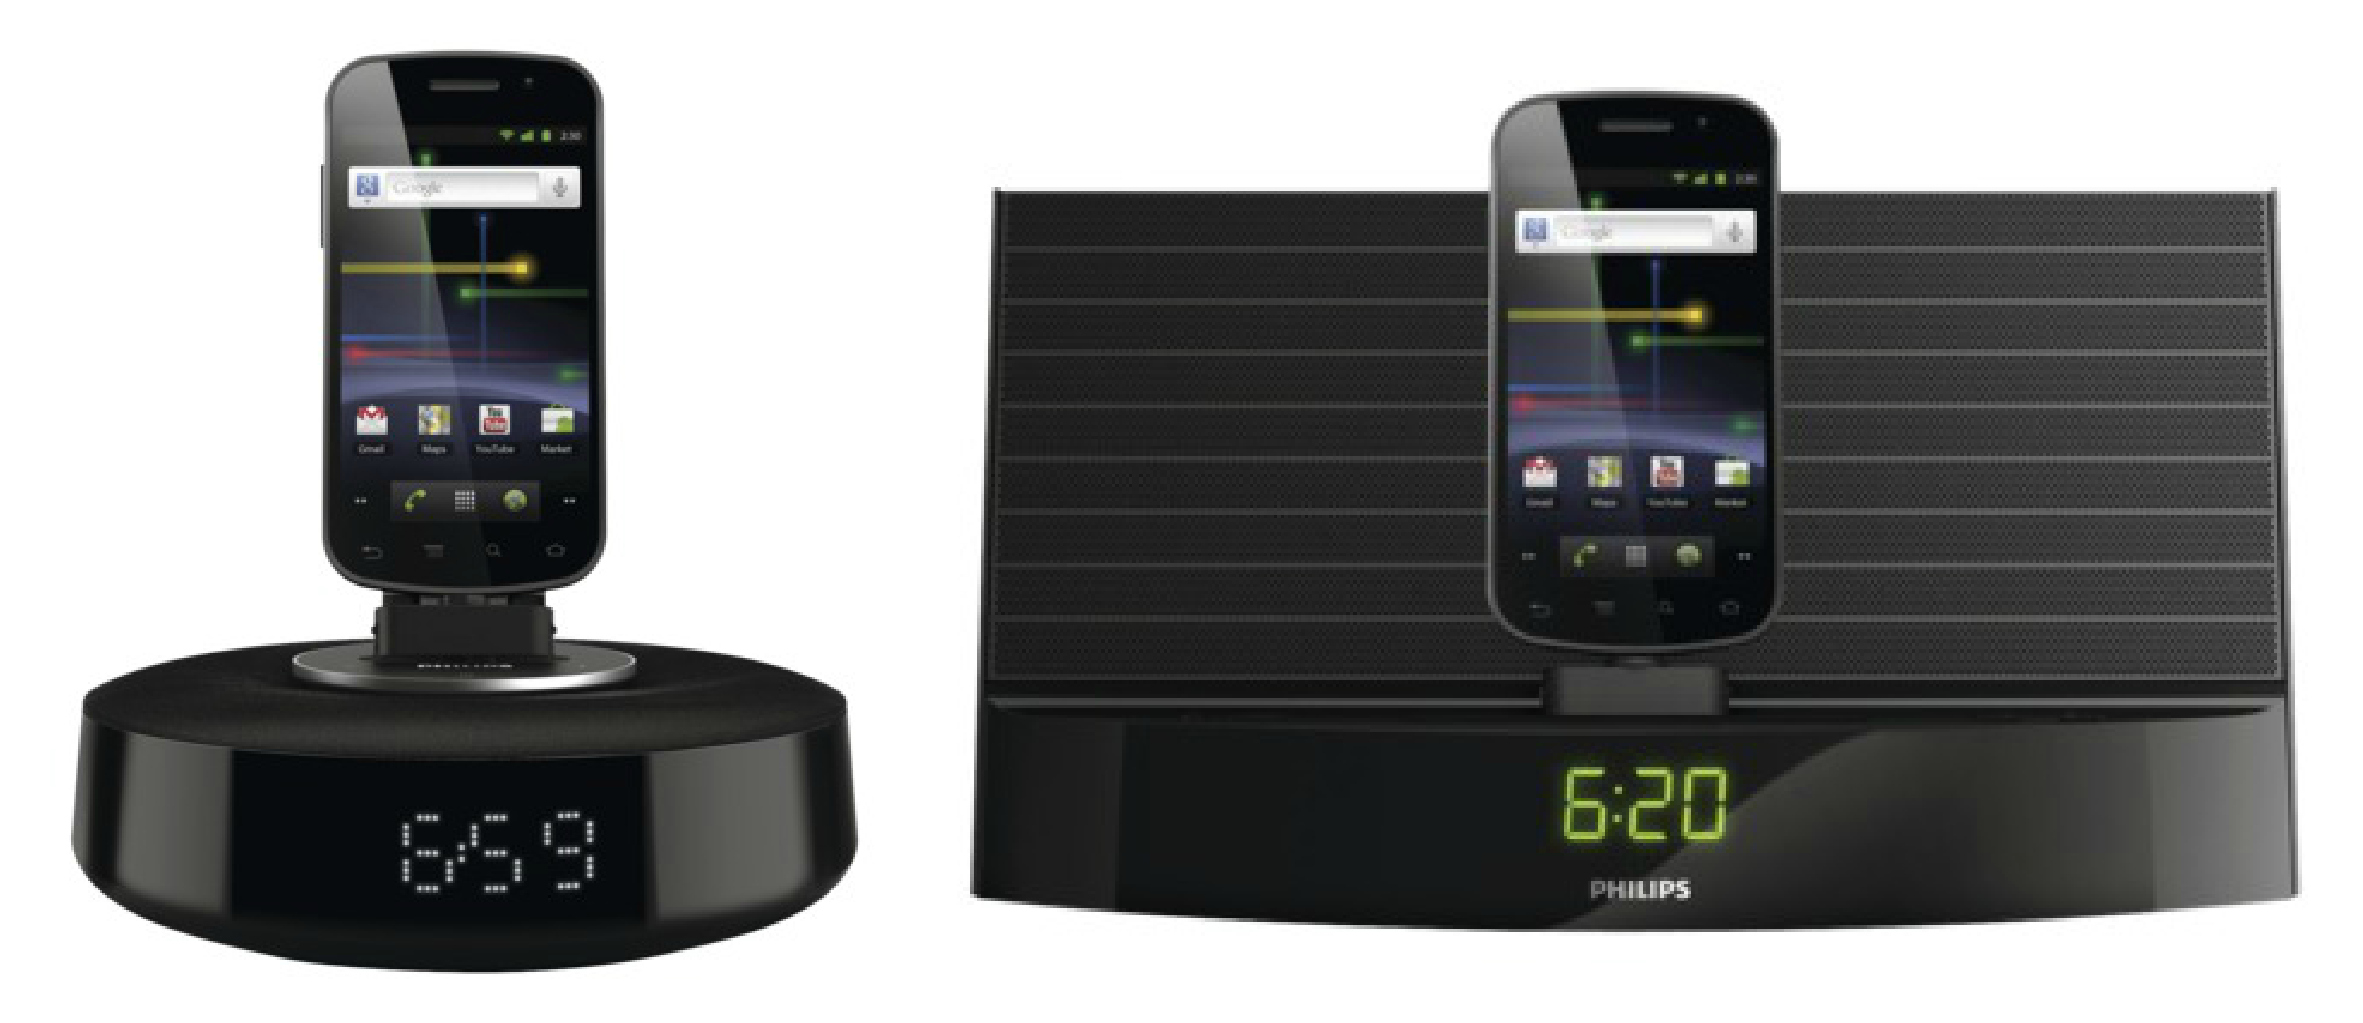 Phone Philips Android Phone philips fidelio android speaker dock now 60 off at target stores a